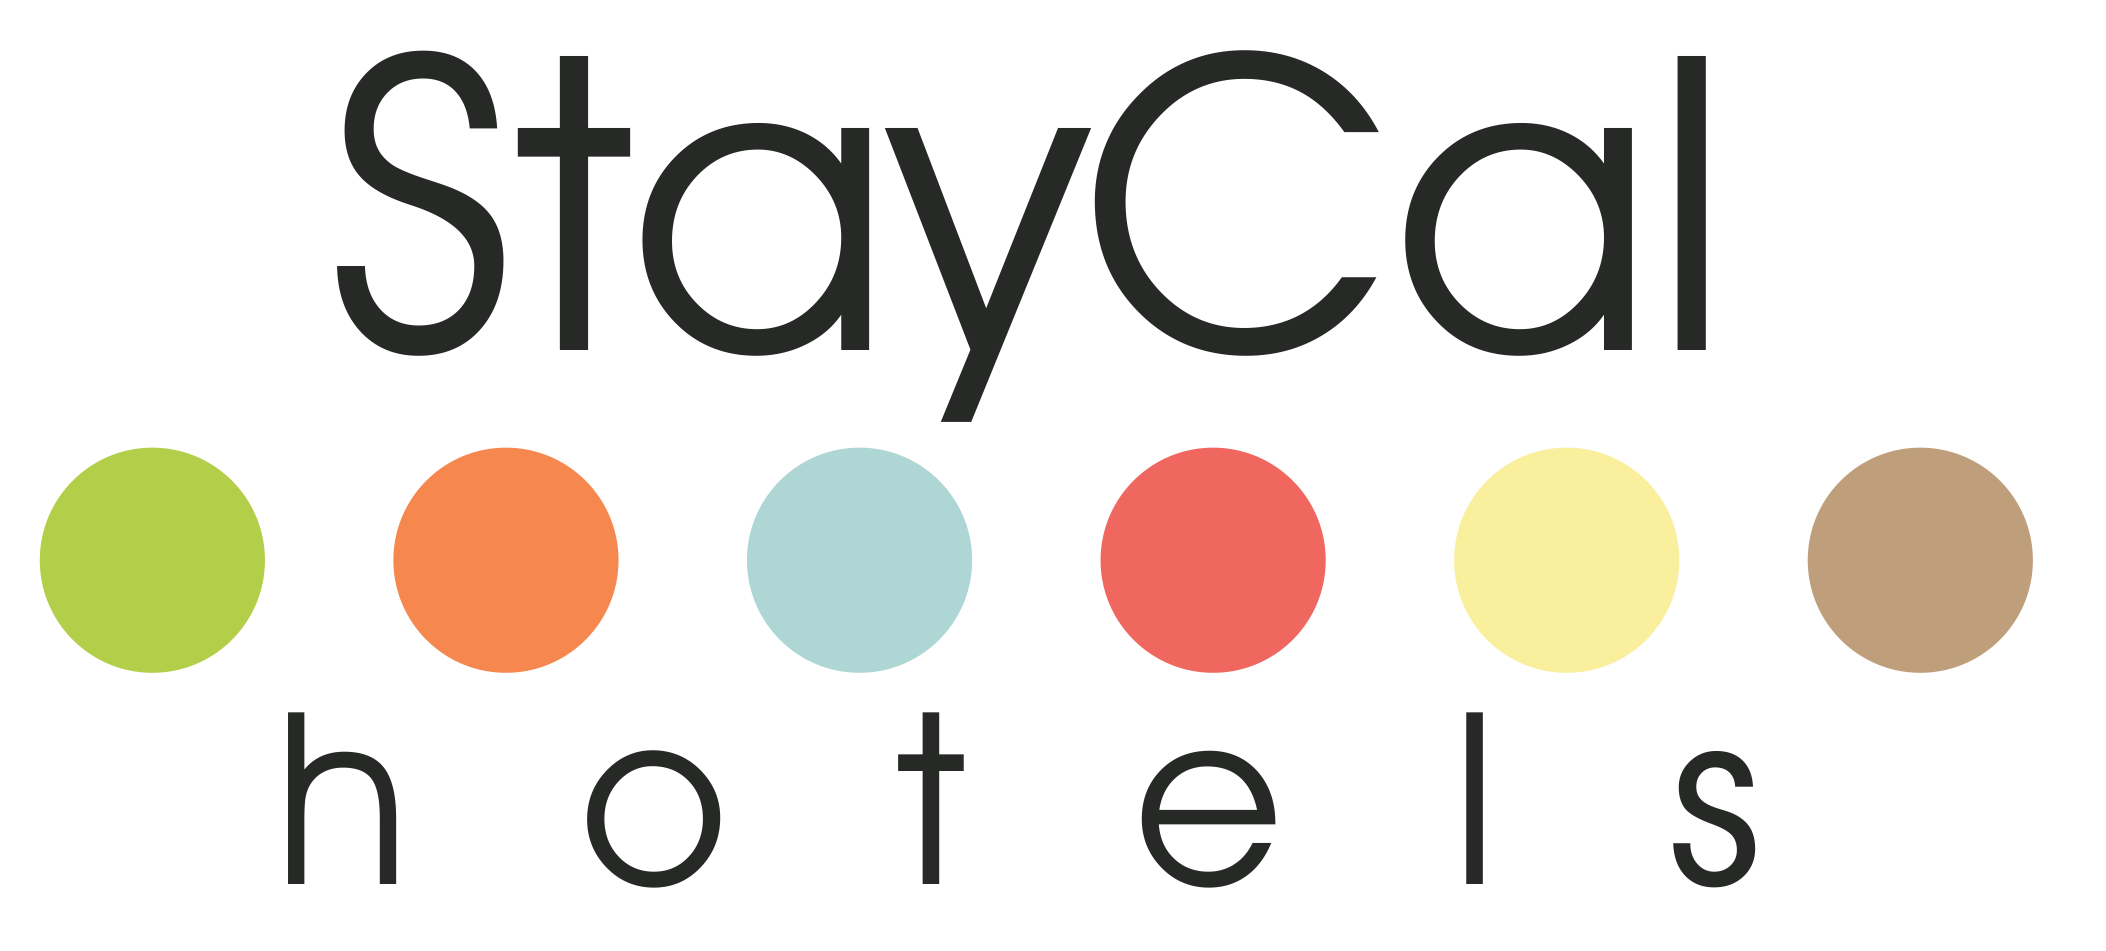 Stay Cal Hotels Logo